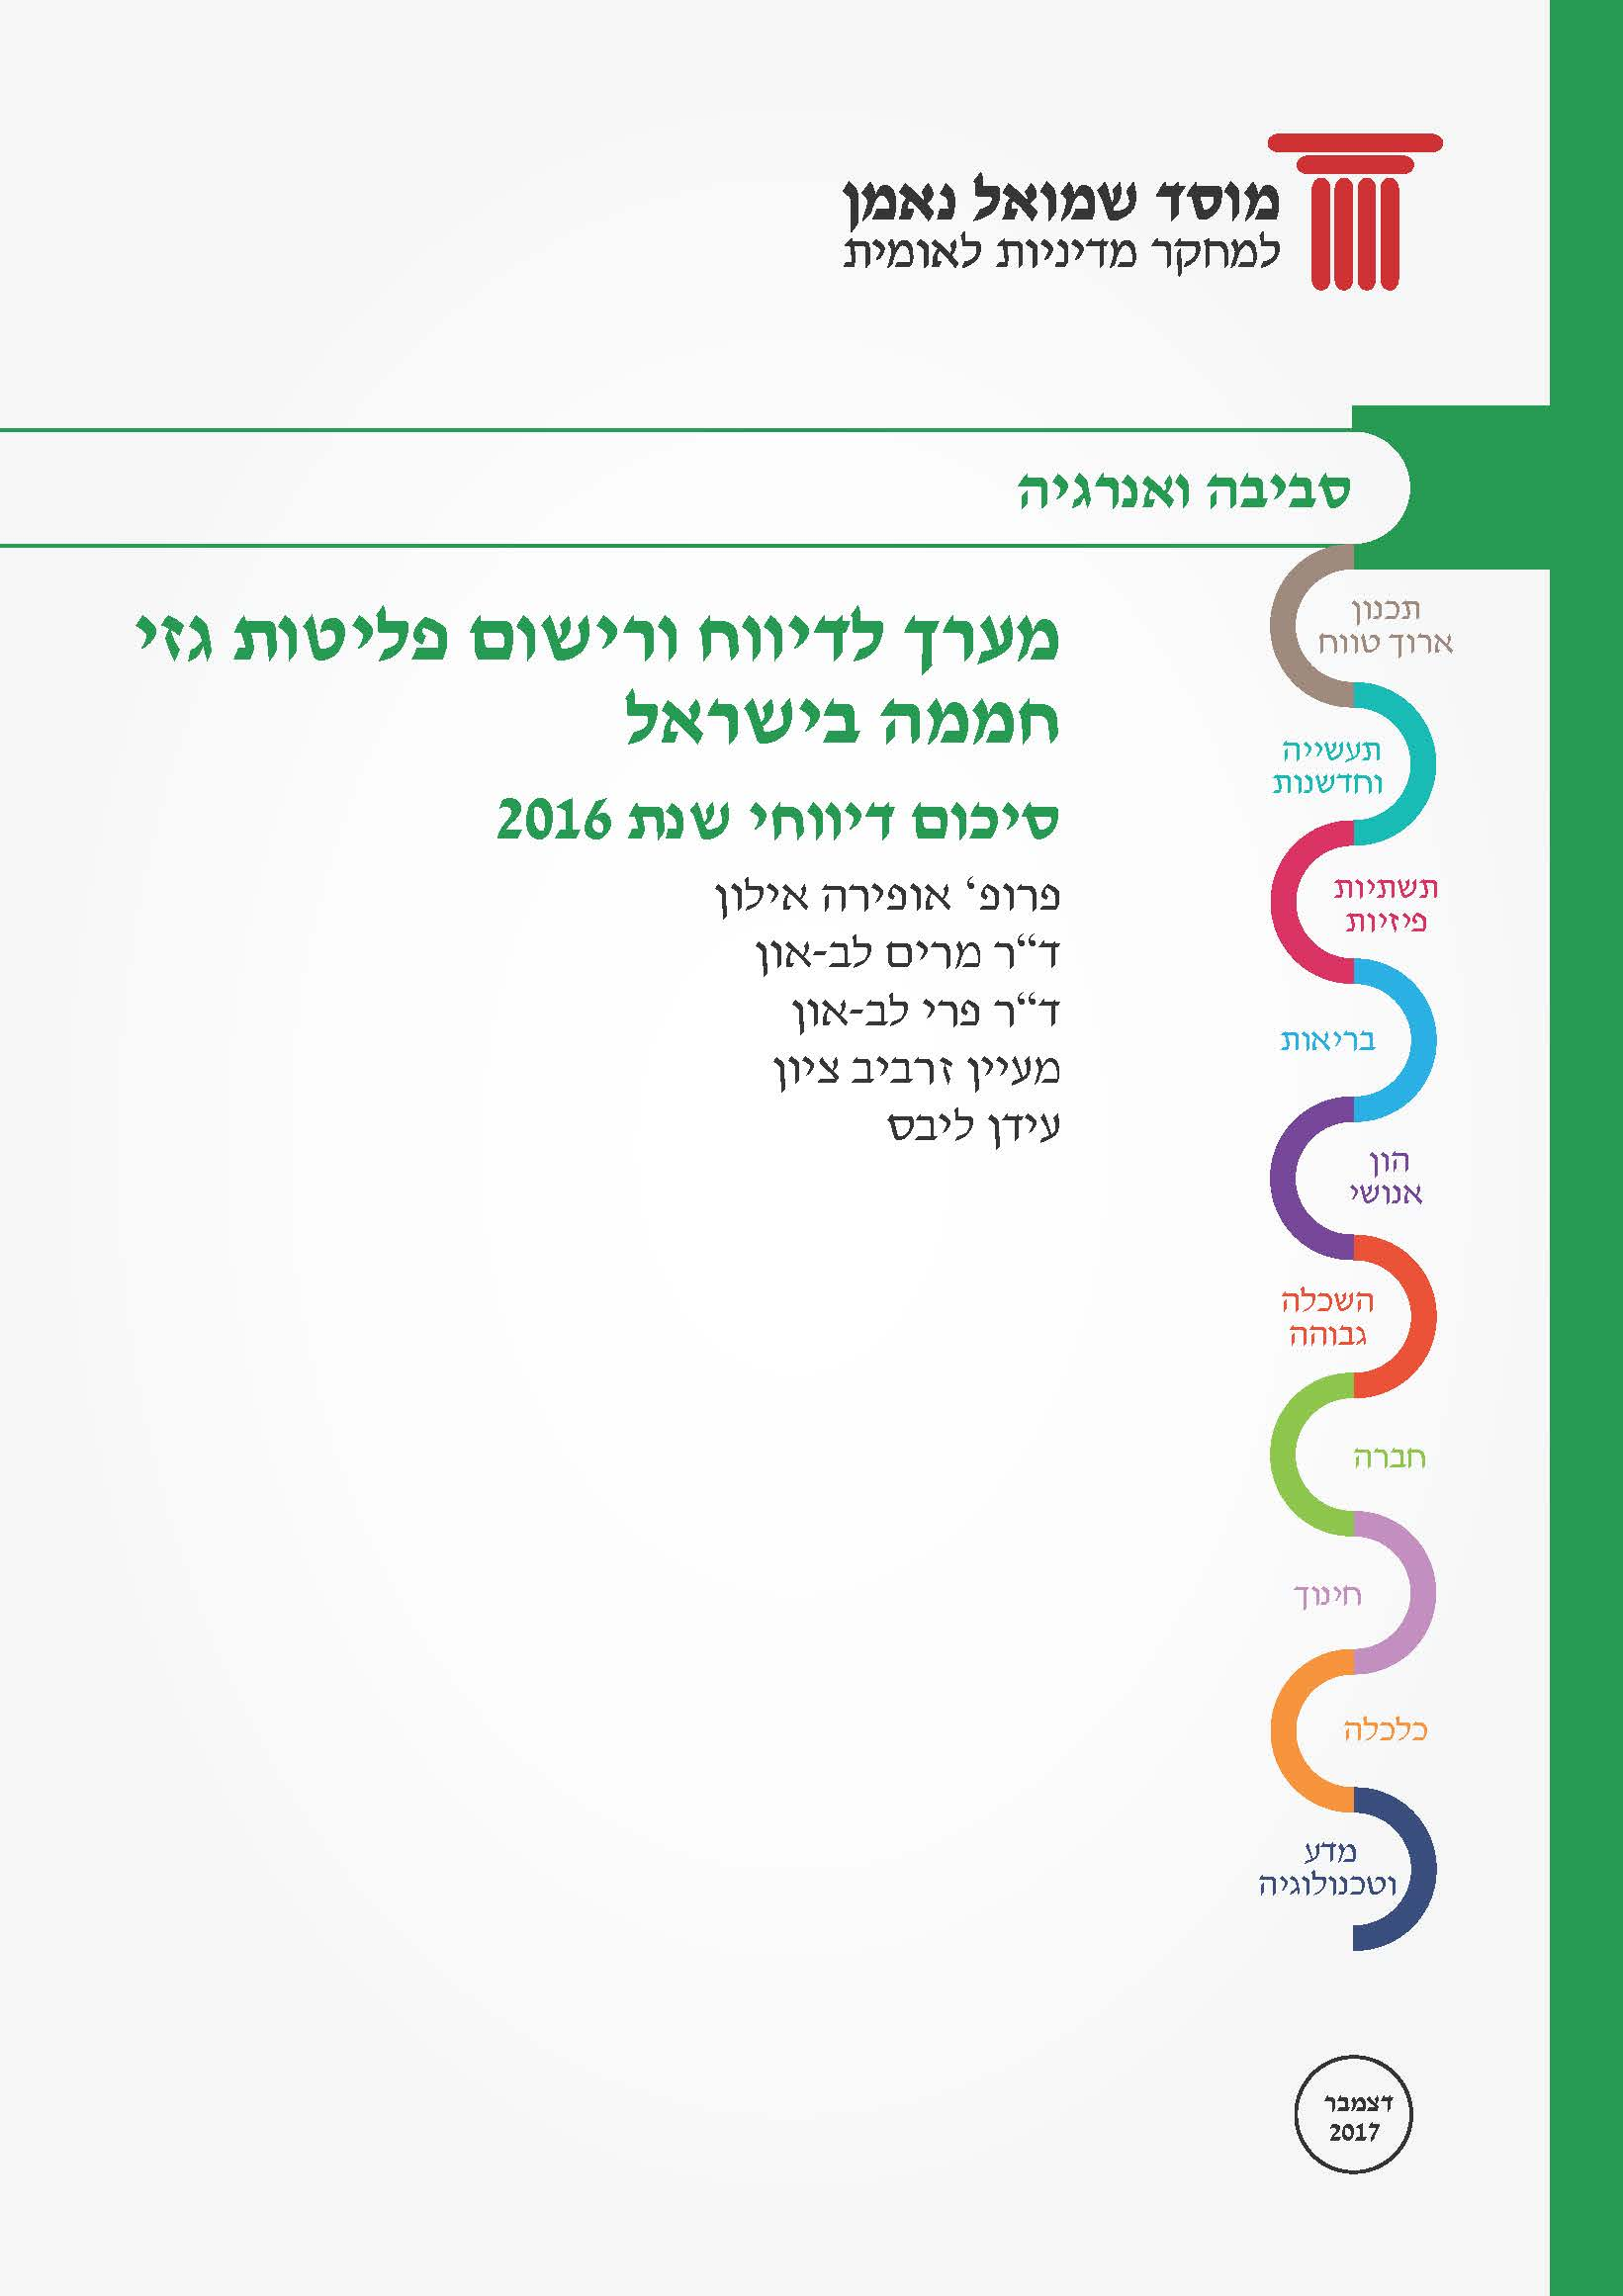 Greenhouse Gas Emissions Reporting and Registration System in Israel: Summary of Reports for 2016